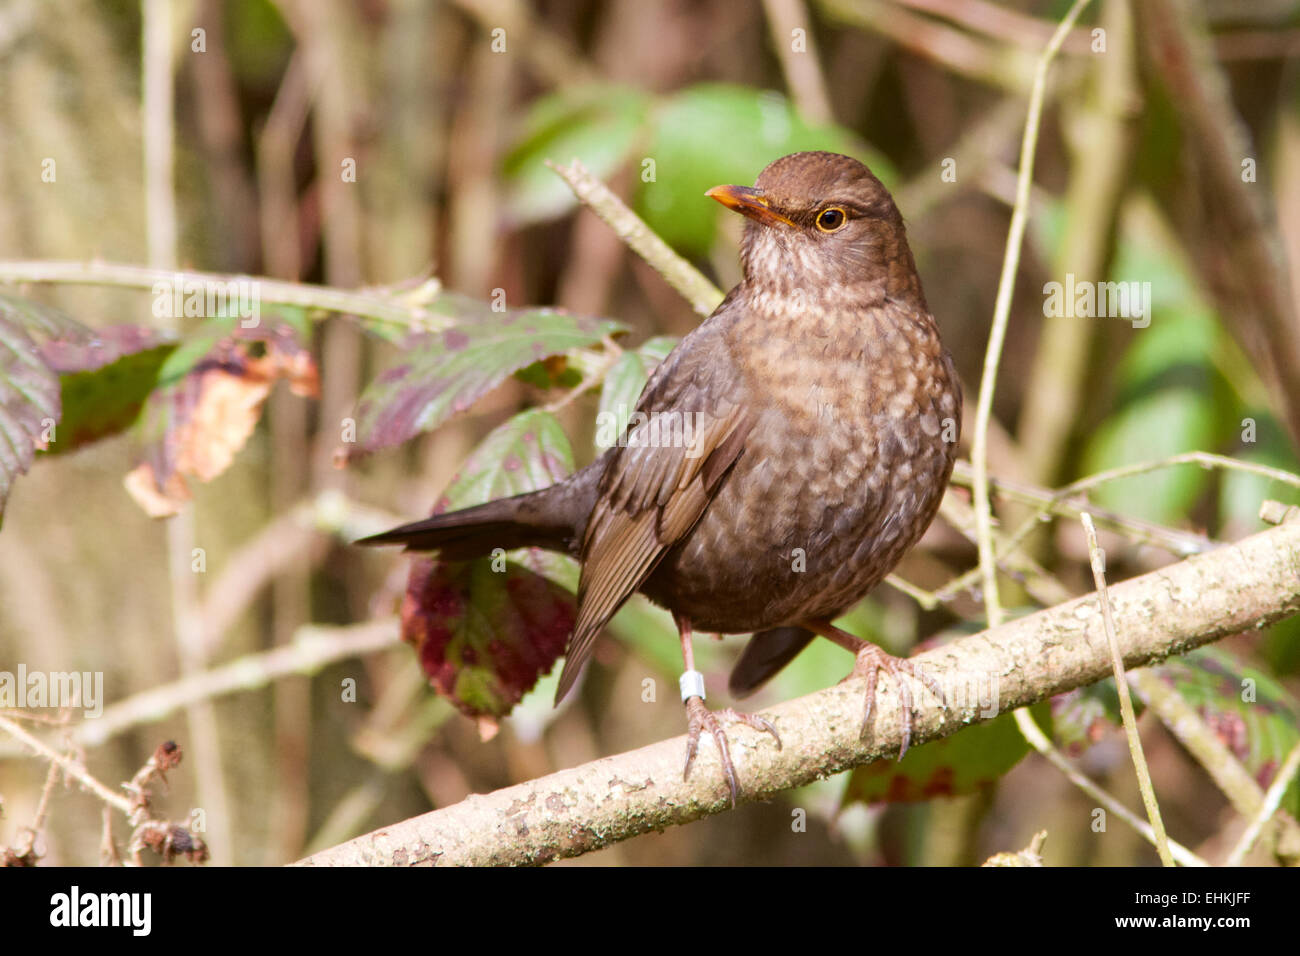 A female Blackbird perched in a woodland setting. - Stock Image